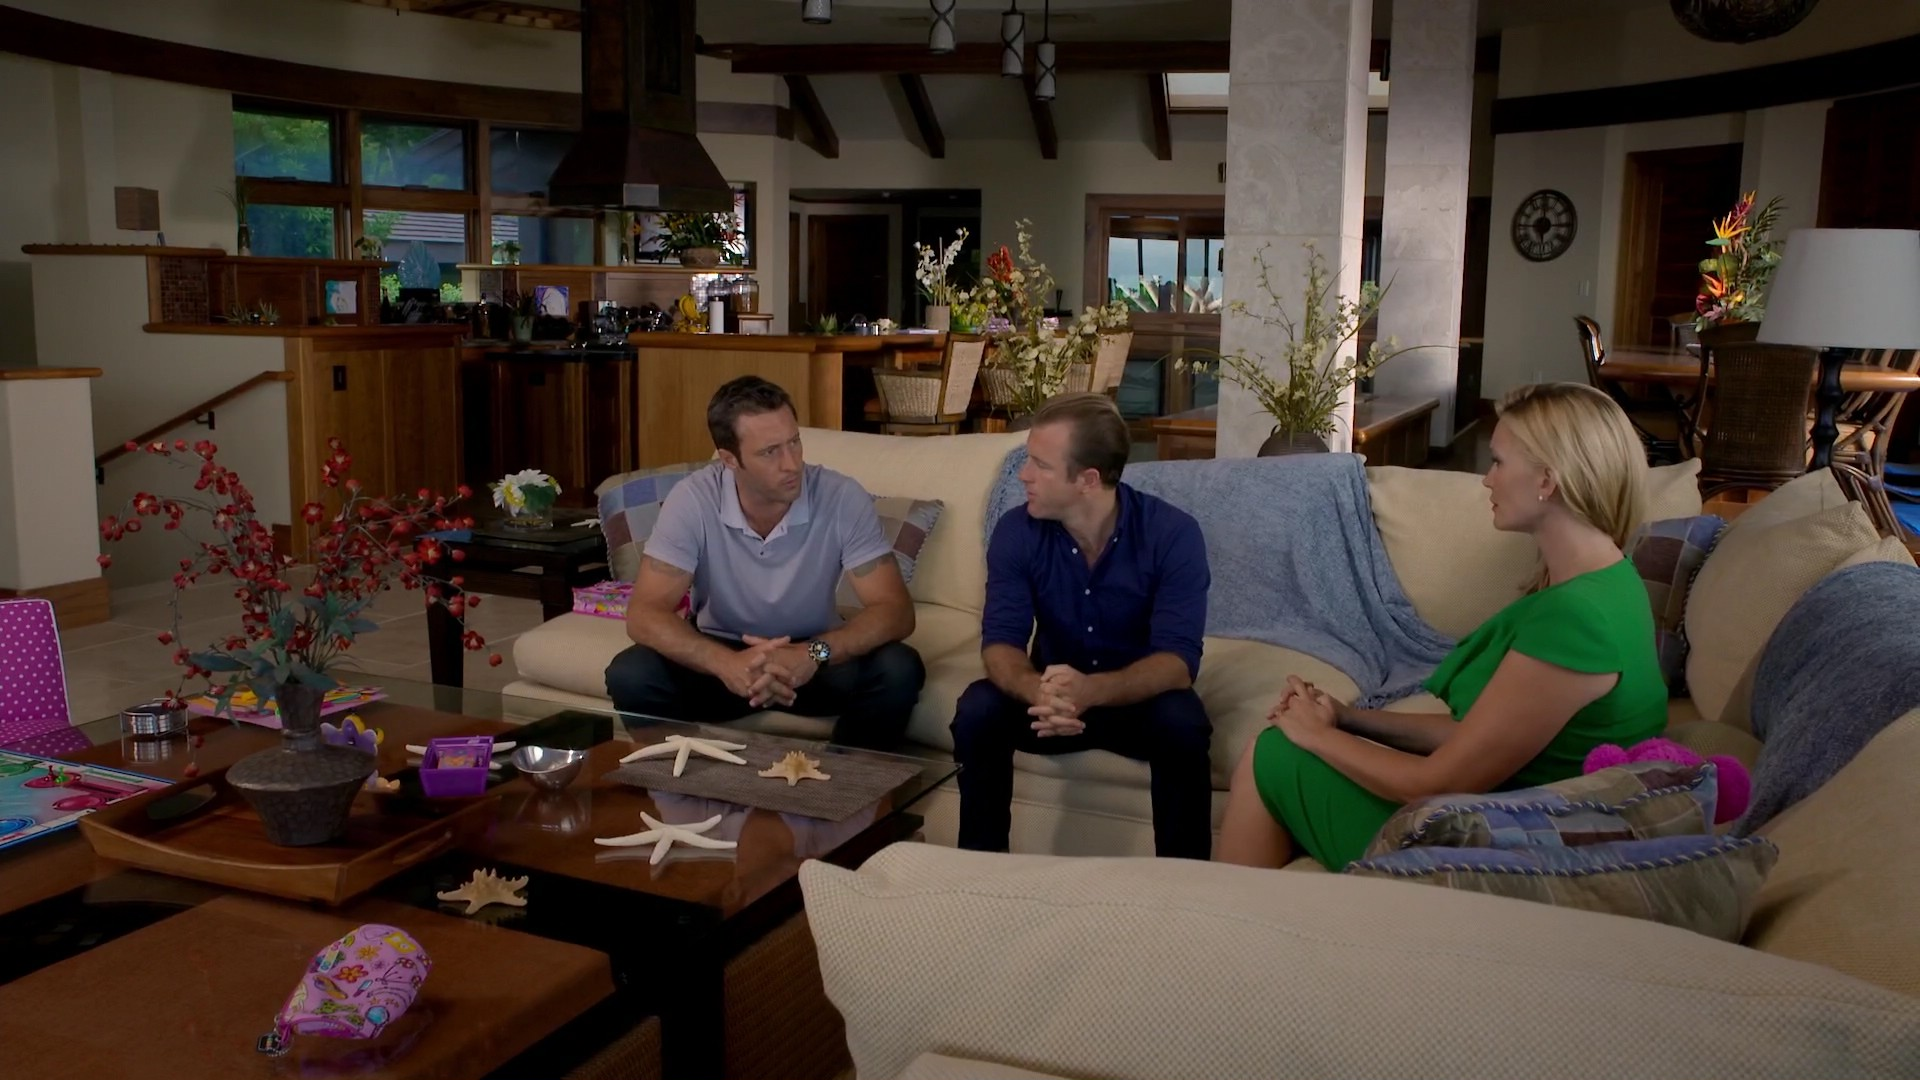 hawaii five o 2010 season 5 episode guide